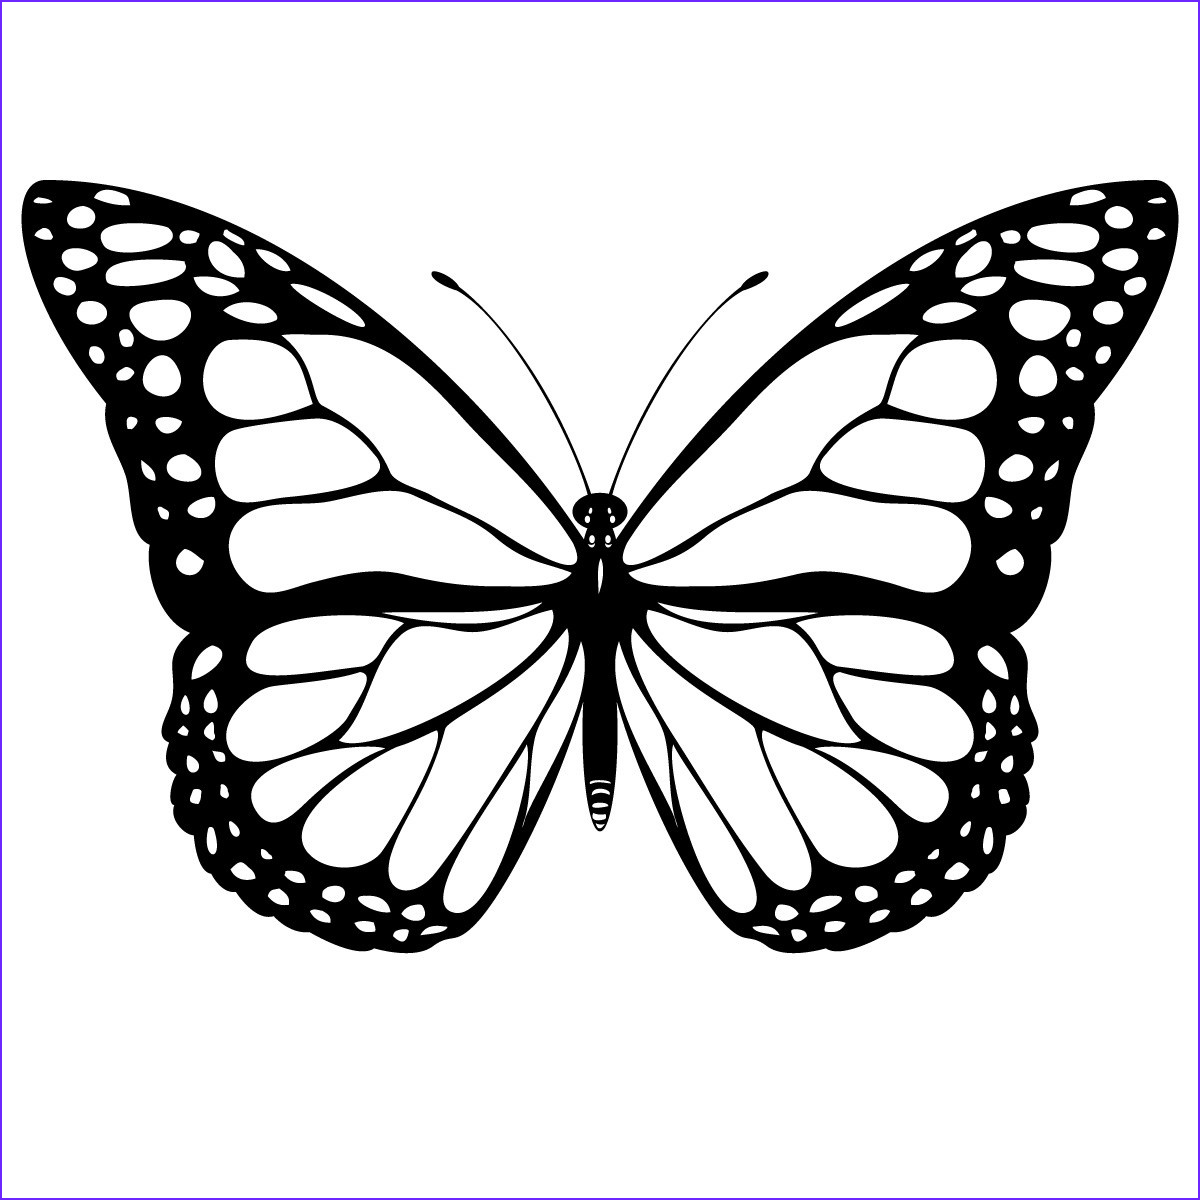 Butterfly Coloring Sheet Unique Photography Free Printable butterfly Coloring Pages for Kids